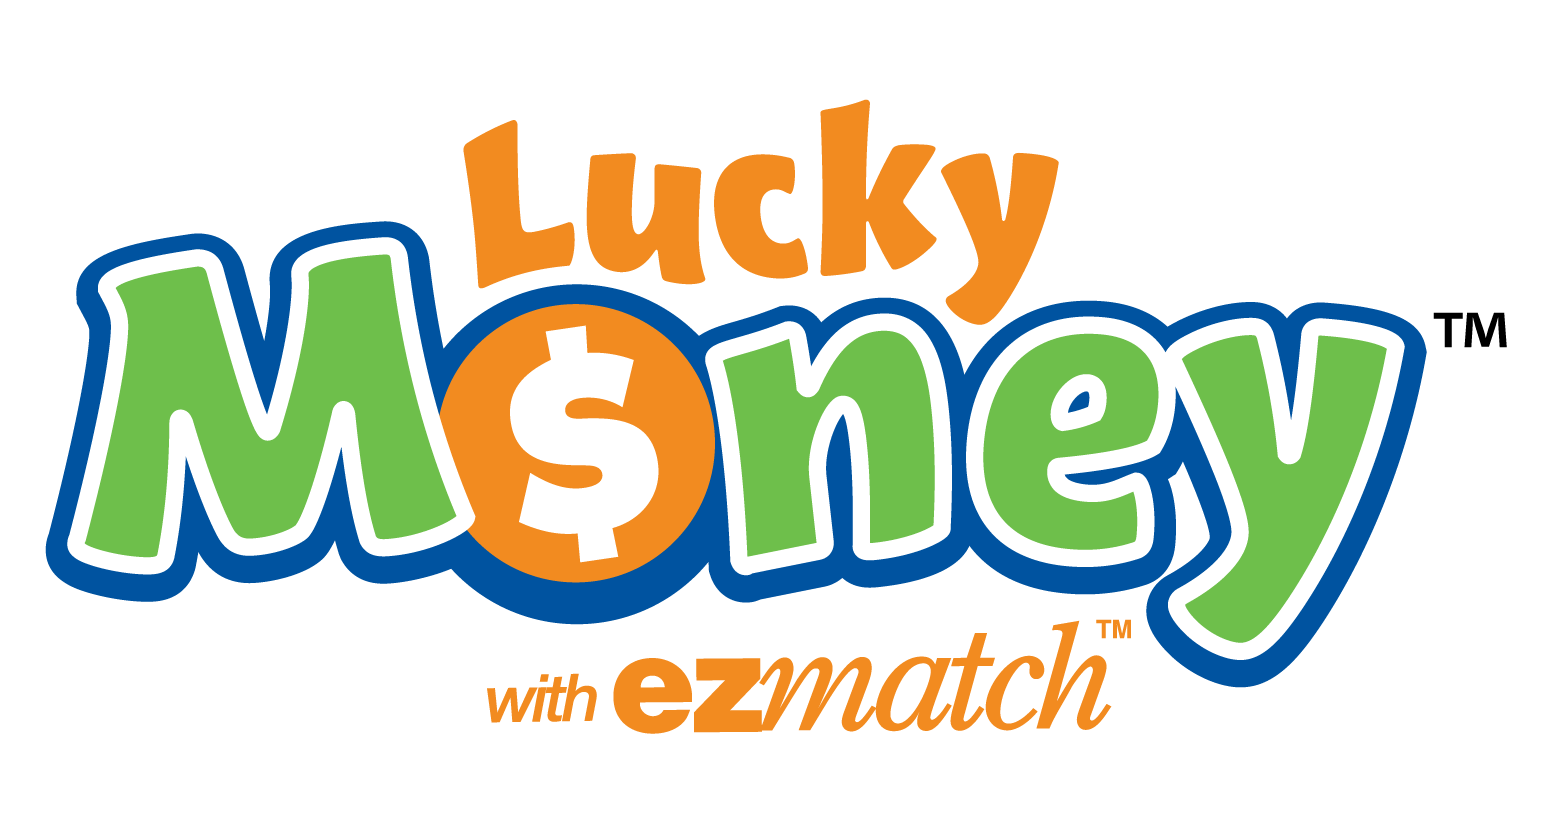 florida lottery logo png